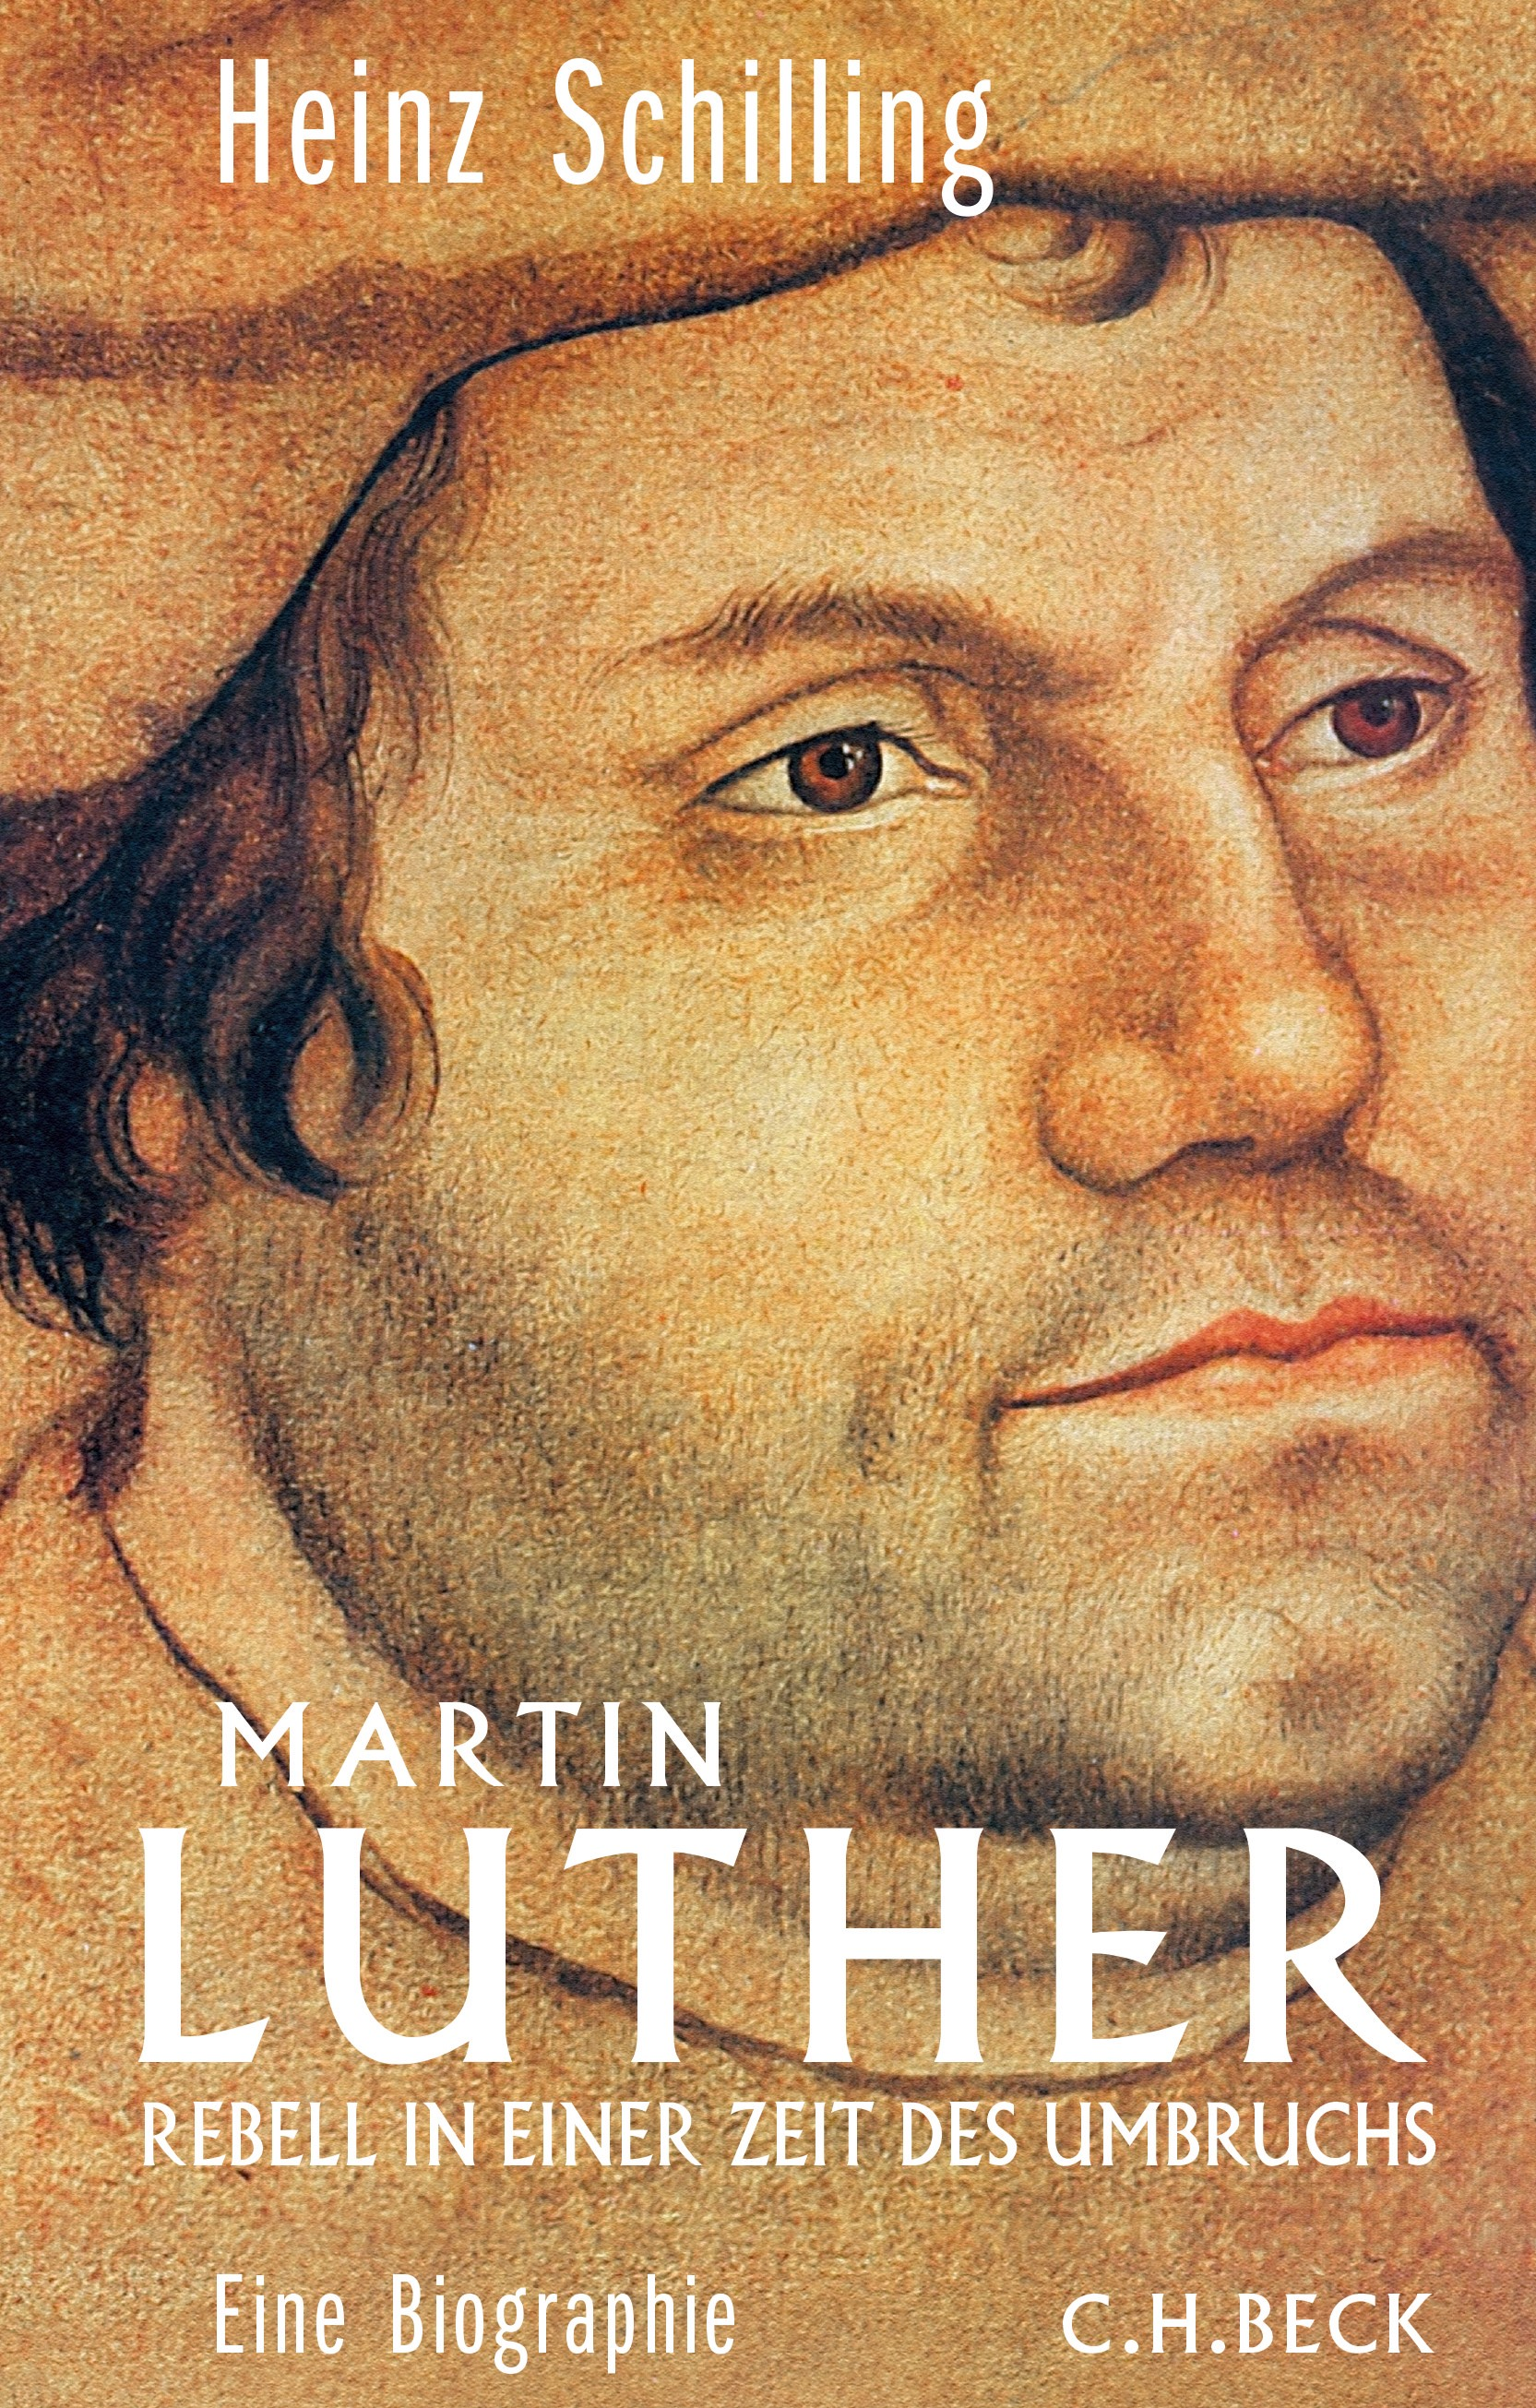 Cover des Buches 'Martin Luther'